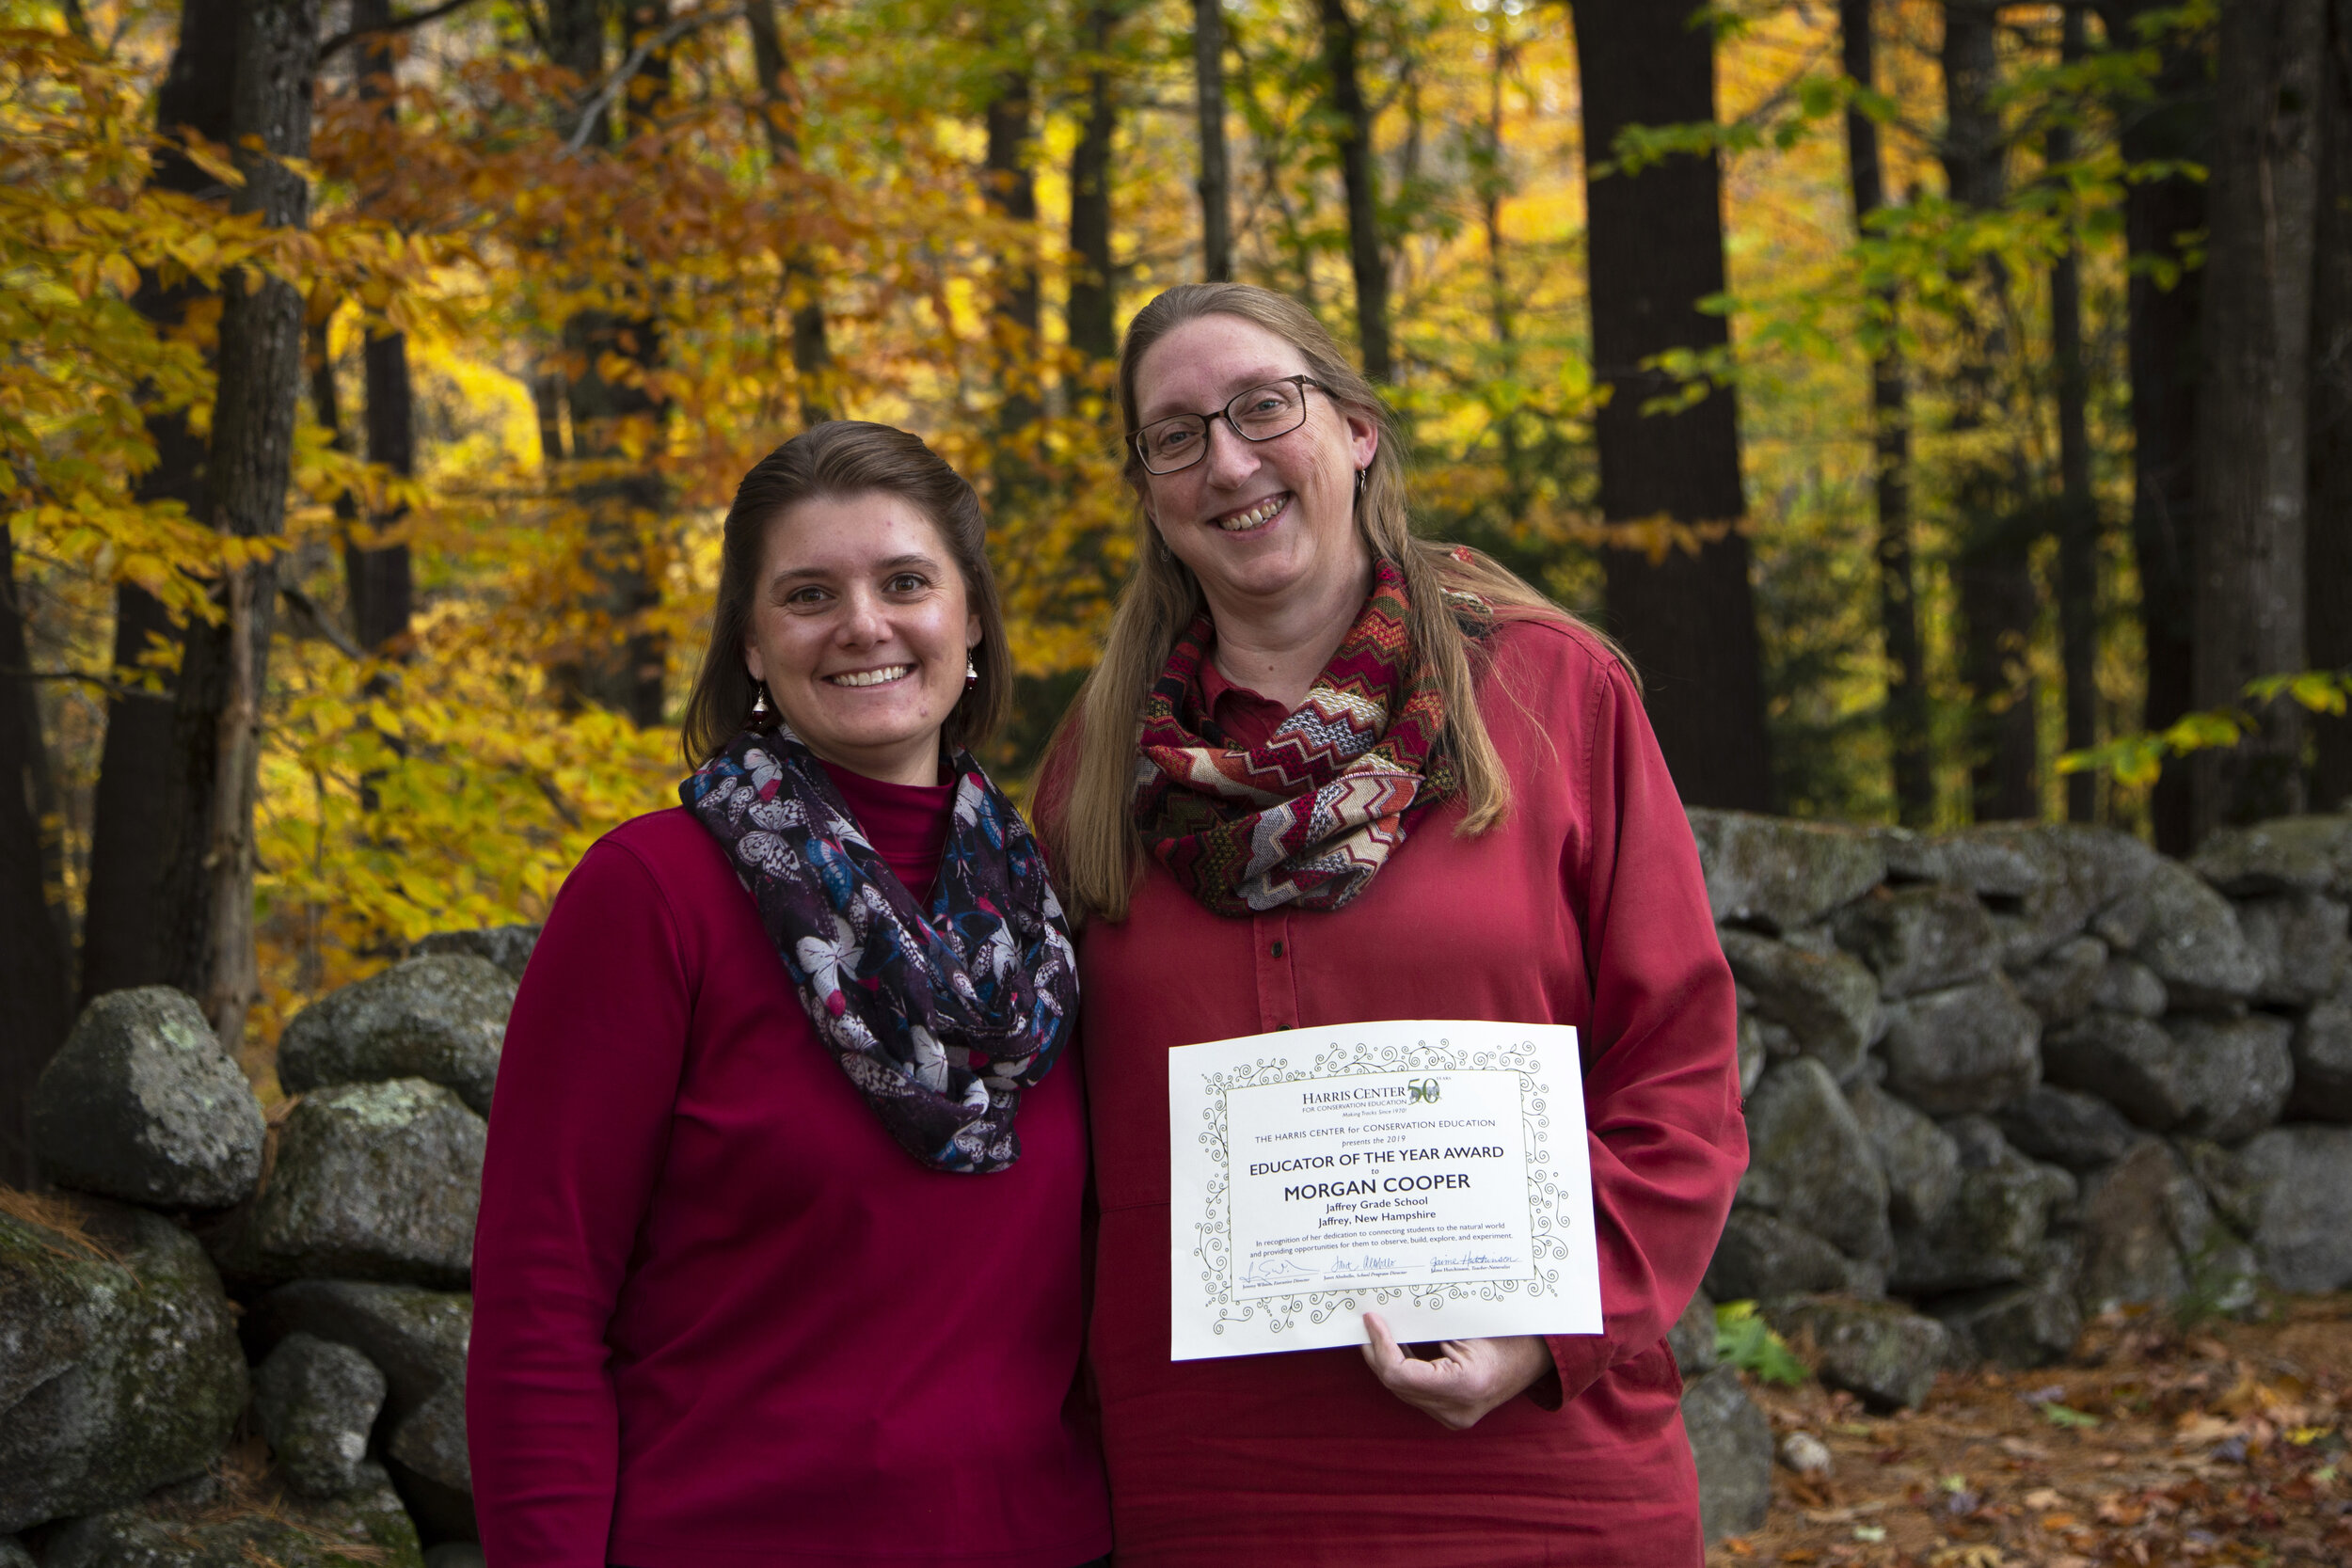 """Harris Center naturalist Jaime Hutchinson (left) presented Morgan Cooper (right) with the Harris Center's """"Educator of the Year"""" Award for 2019. Morgan and Jaime have worked together at Jaffrey Grade School for 6 years -- getting students outside to learn about the natural world around them. (photo © Molly Ferrill)"""